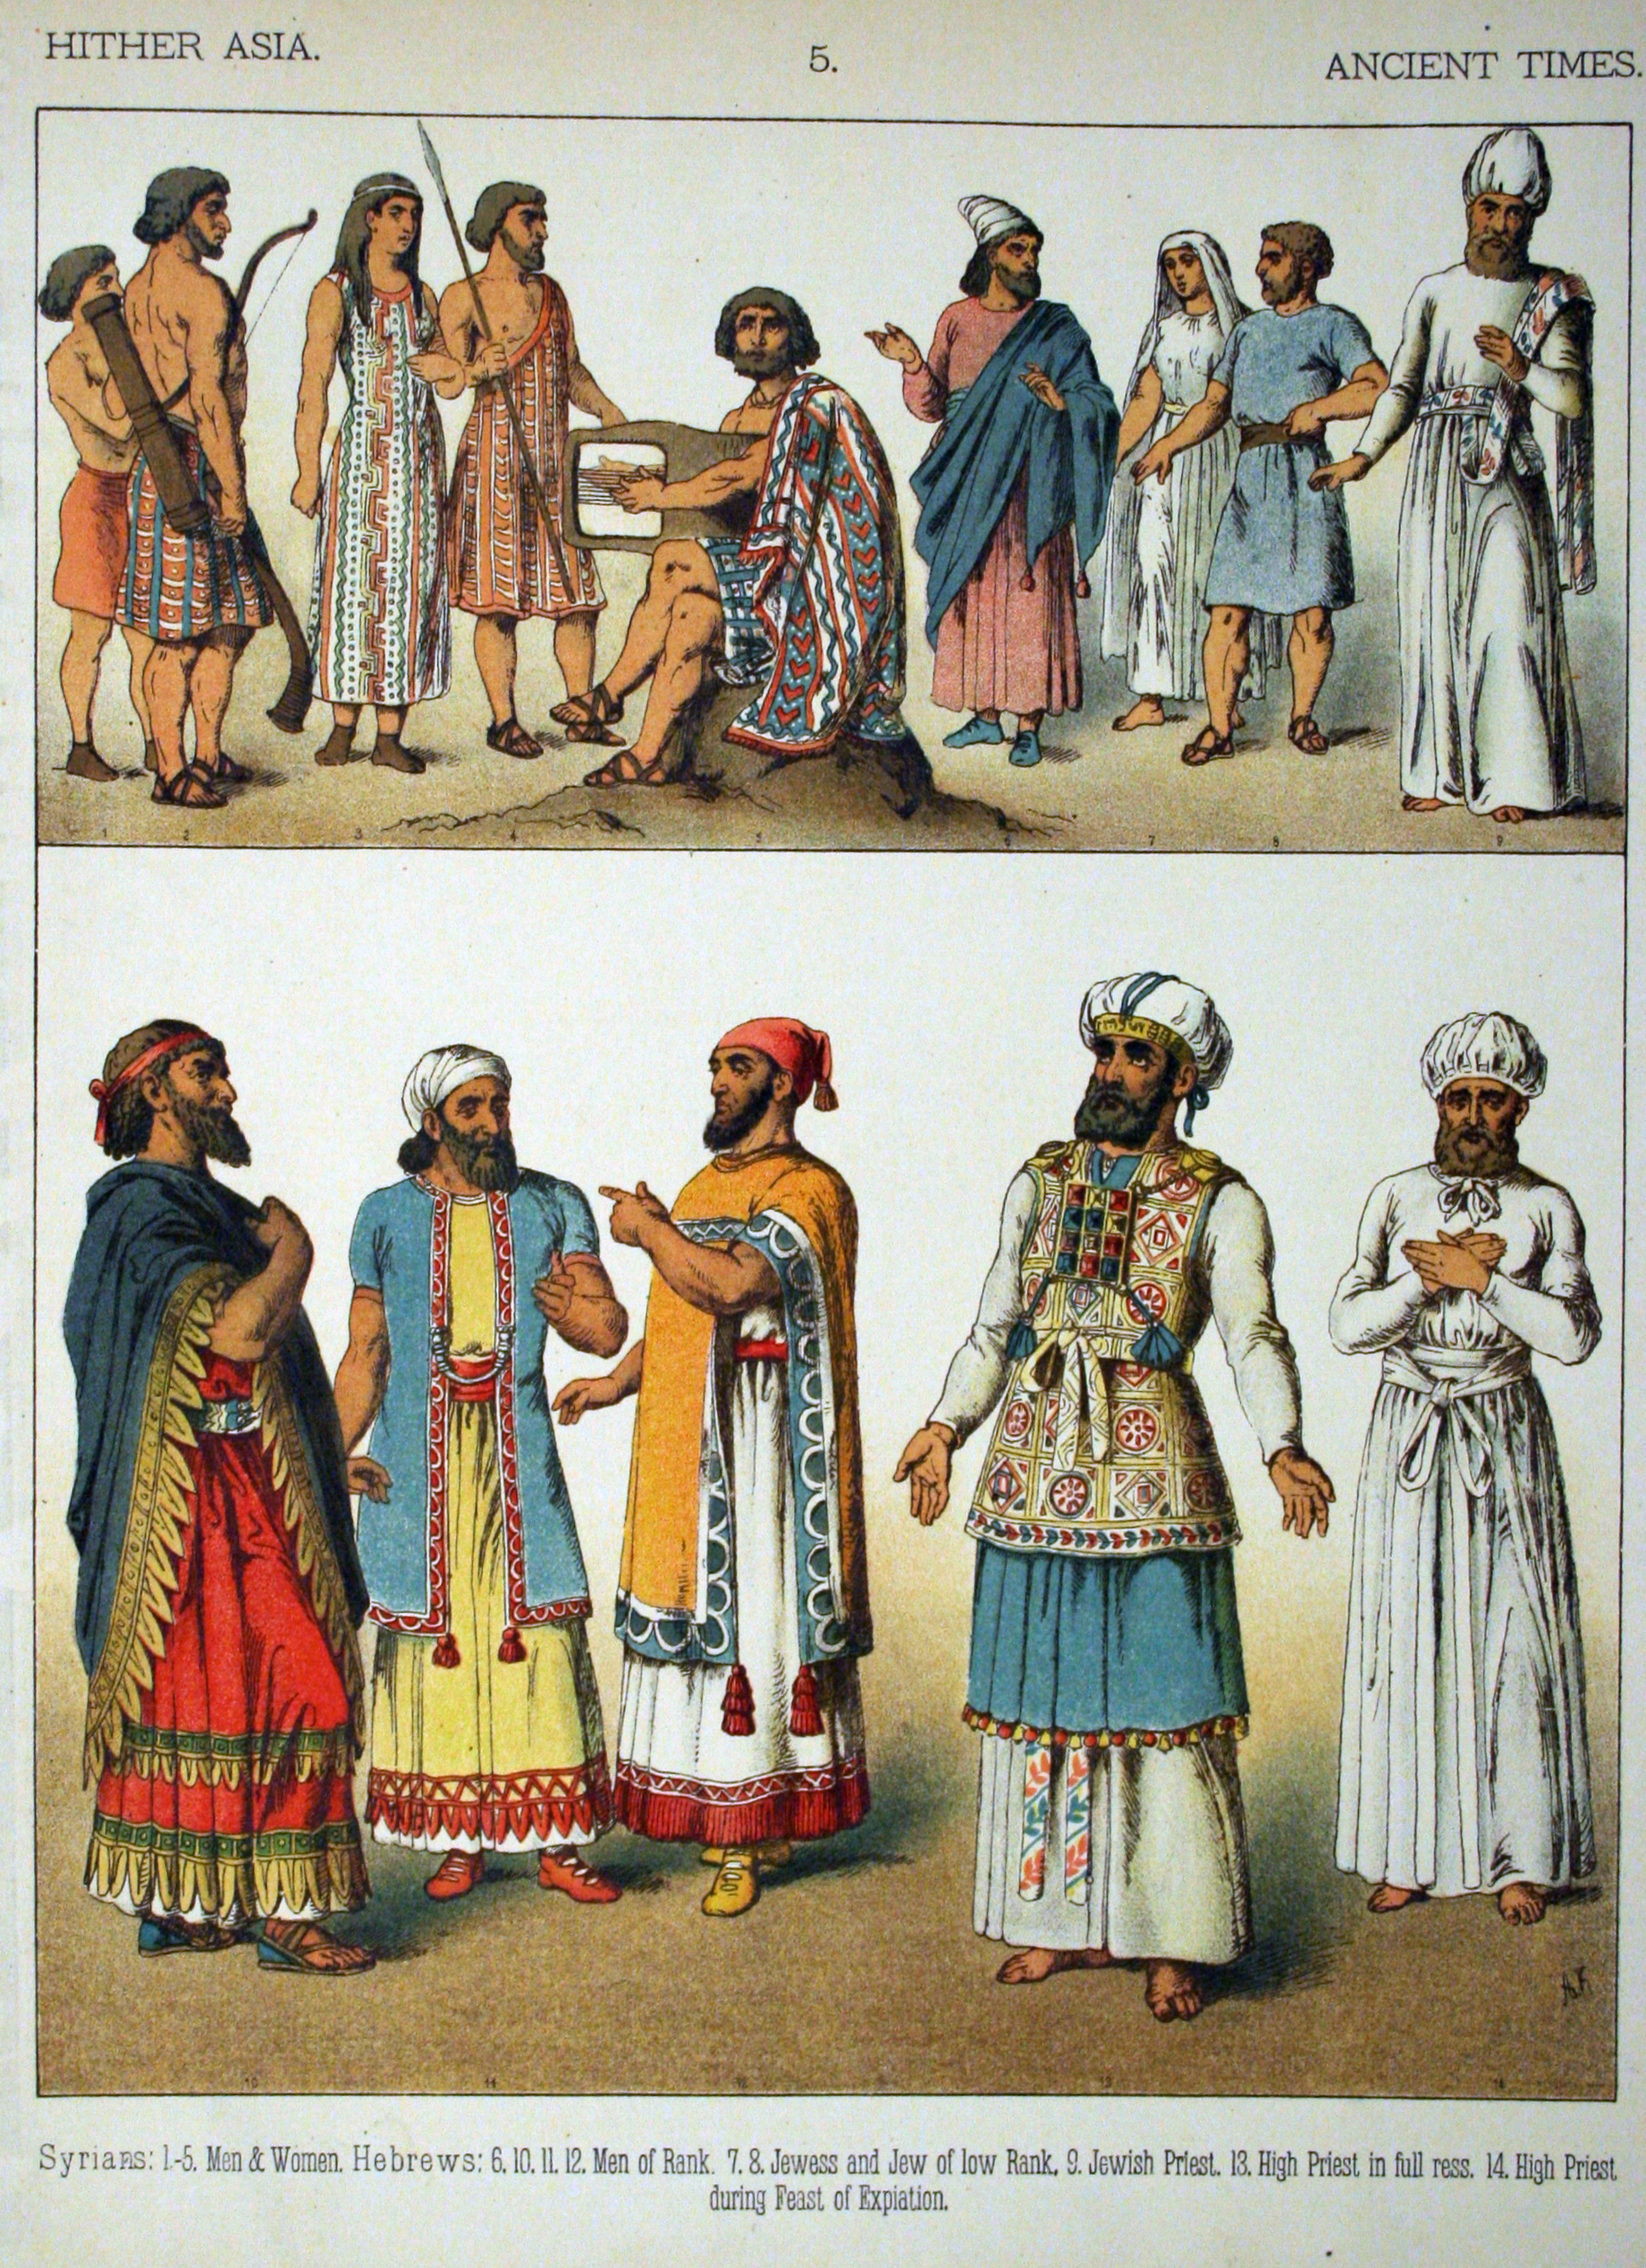 Image ancient times hither asia 005 costumes of all nations ancient times hither asia 005 costumes of all nations 1882 near easterns fig 1 5 canaanites aamu hyksos fig 6 14 hebrews israelites jews from publicscrutiny Images